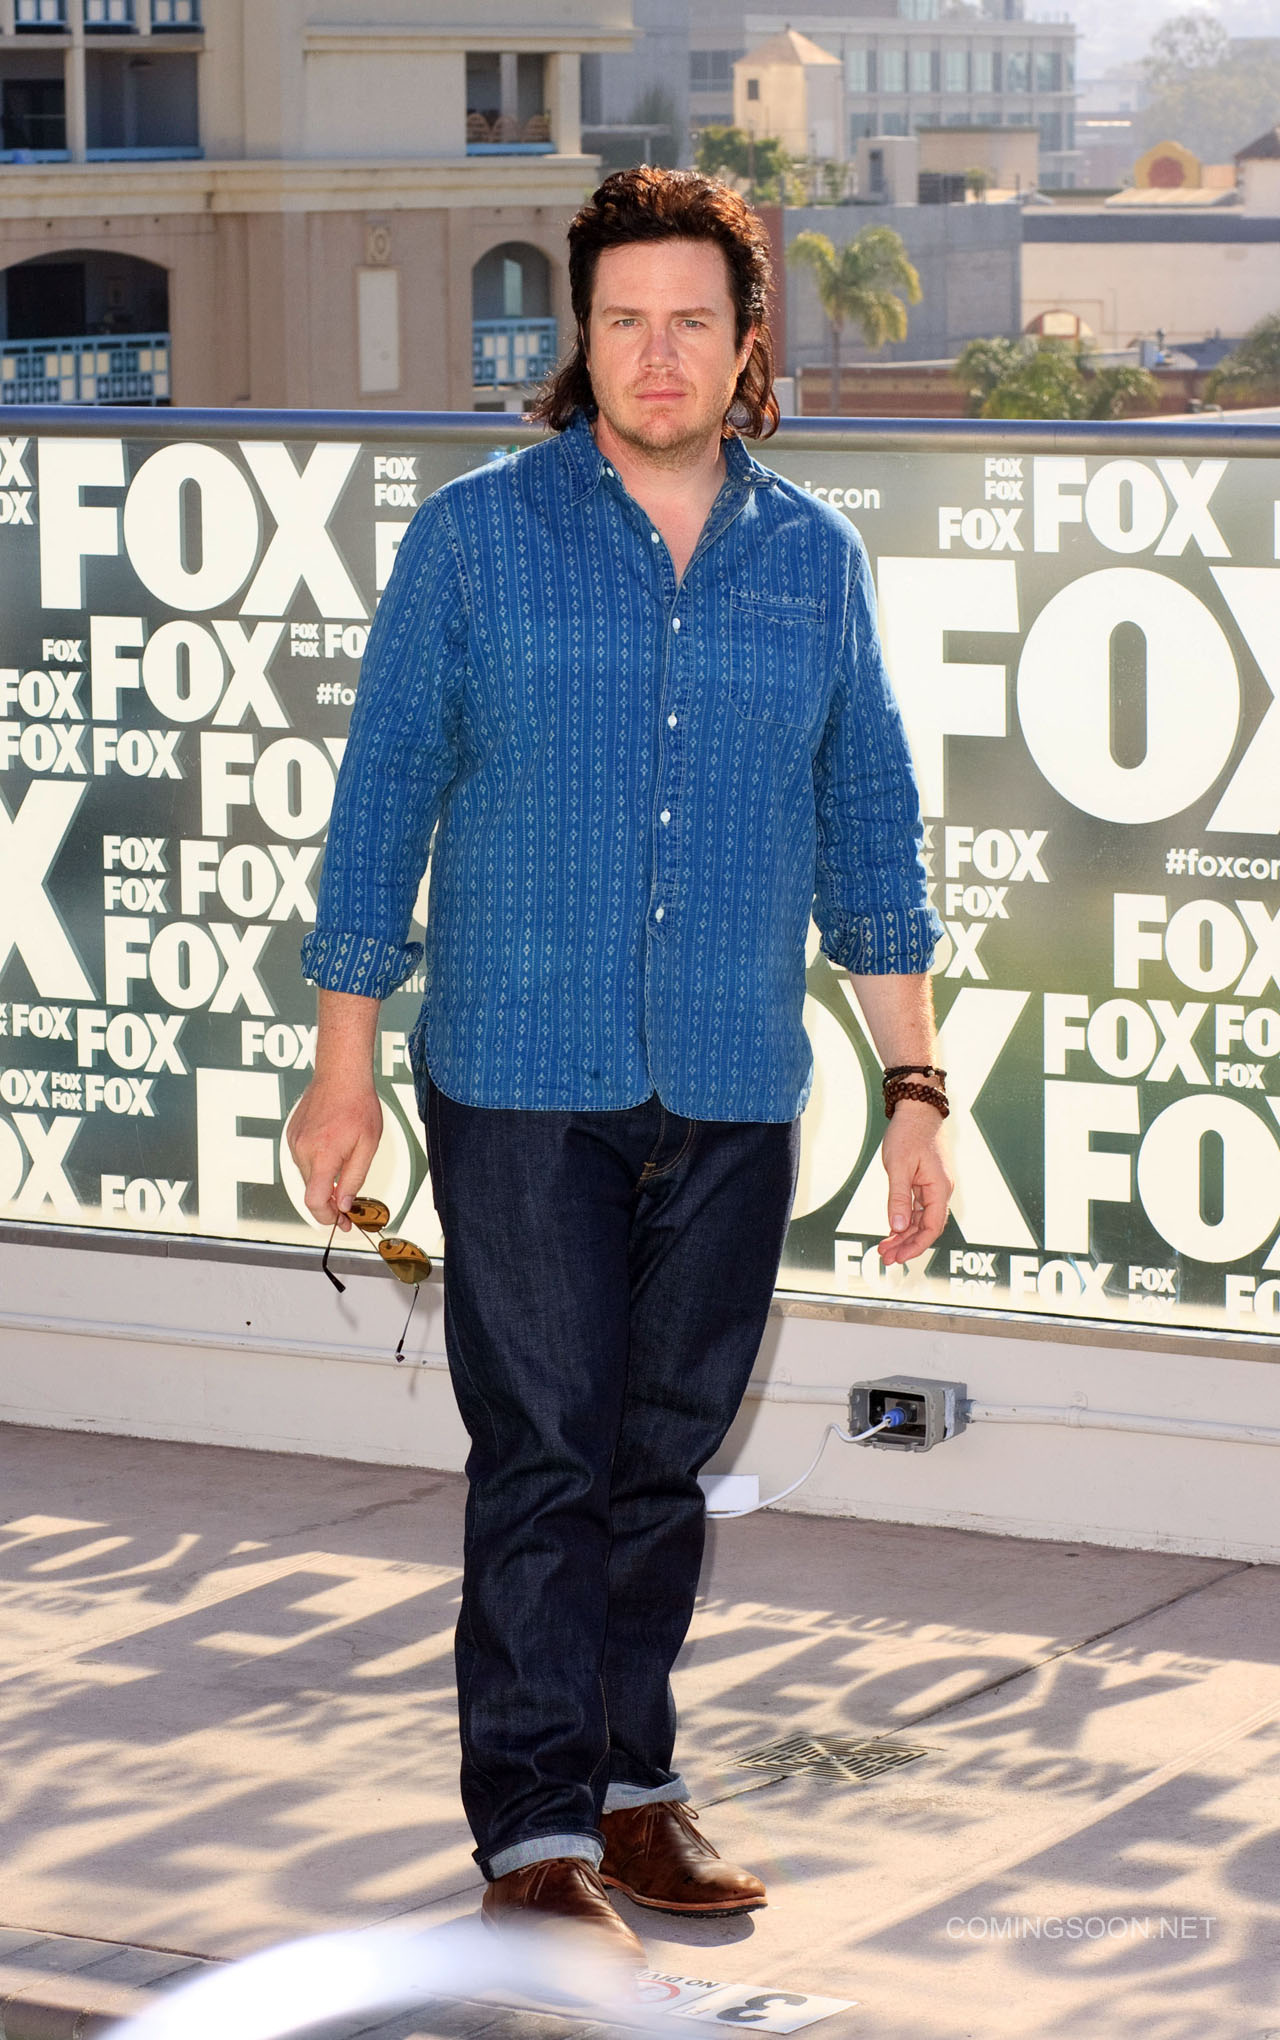 Fox Comic Con breakfast with the cast of Walking Dead and Outcast Featuring: Josh McDermitt Where: San Diego, California, United States When: 22 Jul 2016 Credit: Tony Forte/WENN